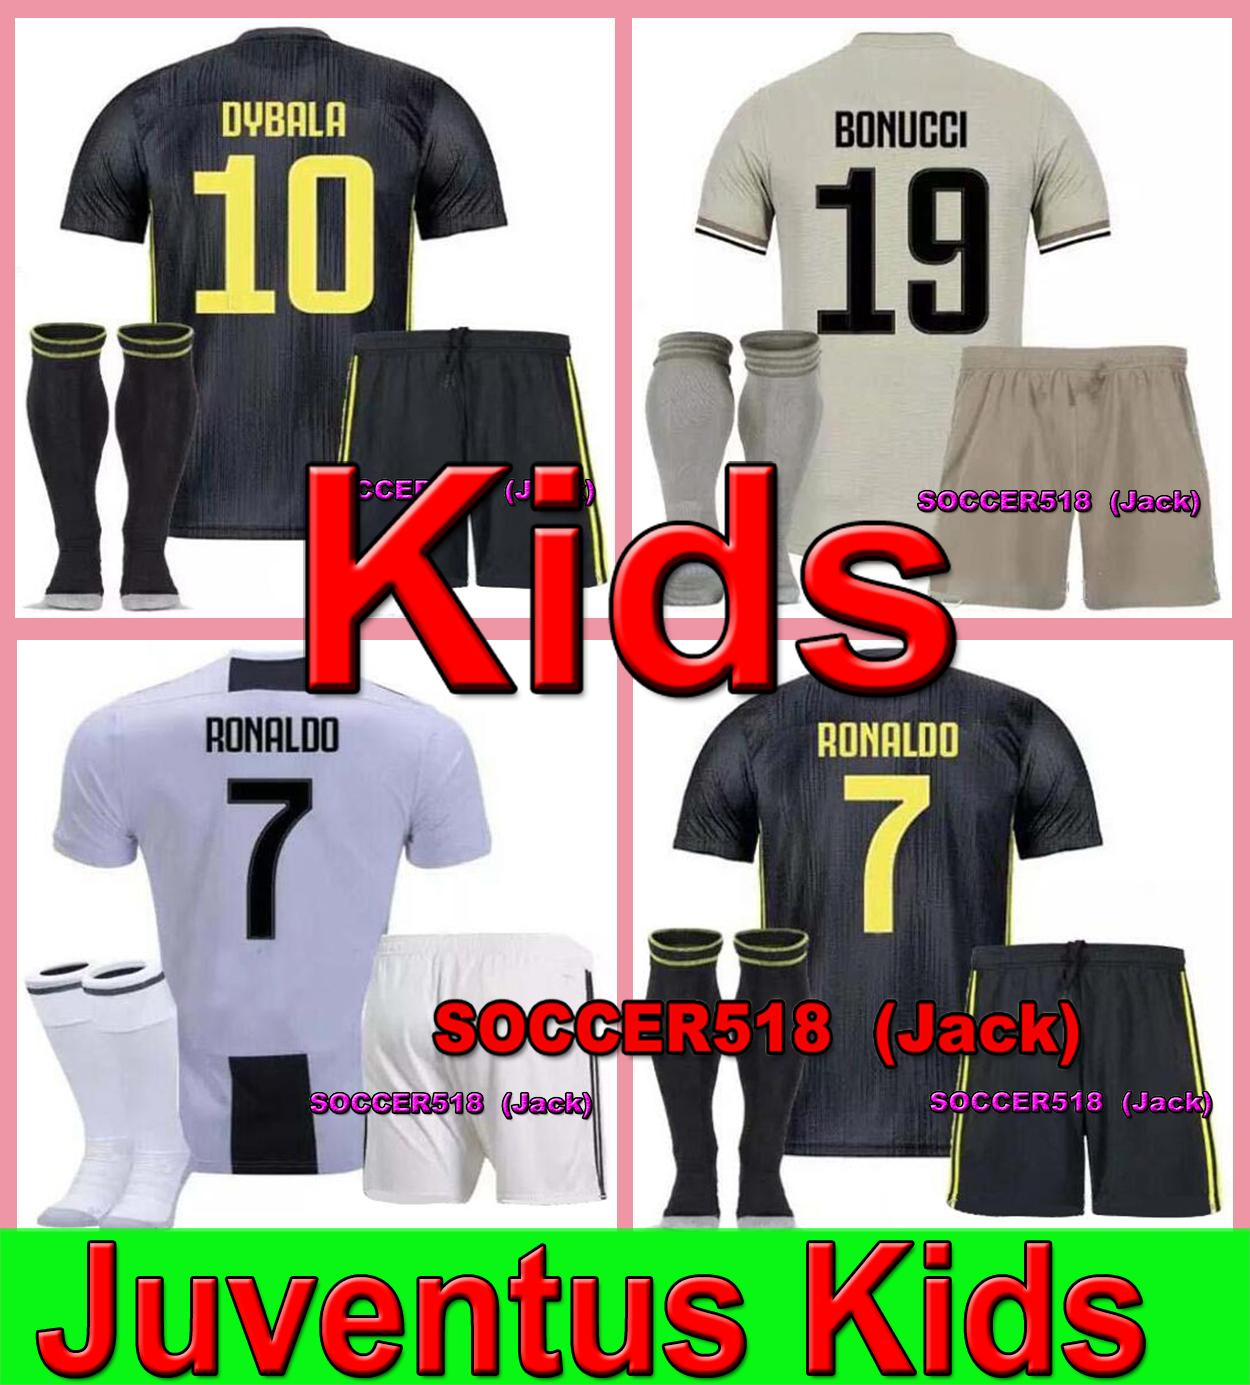 newest fb65c 3061e 2019 kids kit juventus RONALDO #7 soccer jerseys DYBALA with shorts and  socks Maillots de football kids kit BERNARDESCHI camiseta de PJANIC